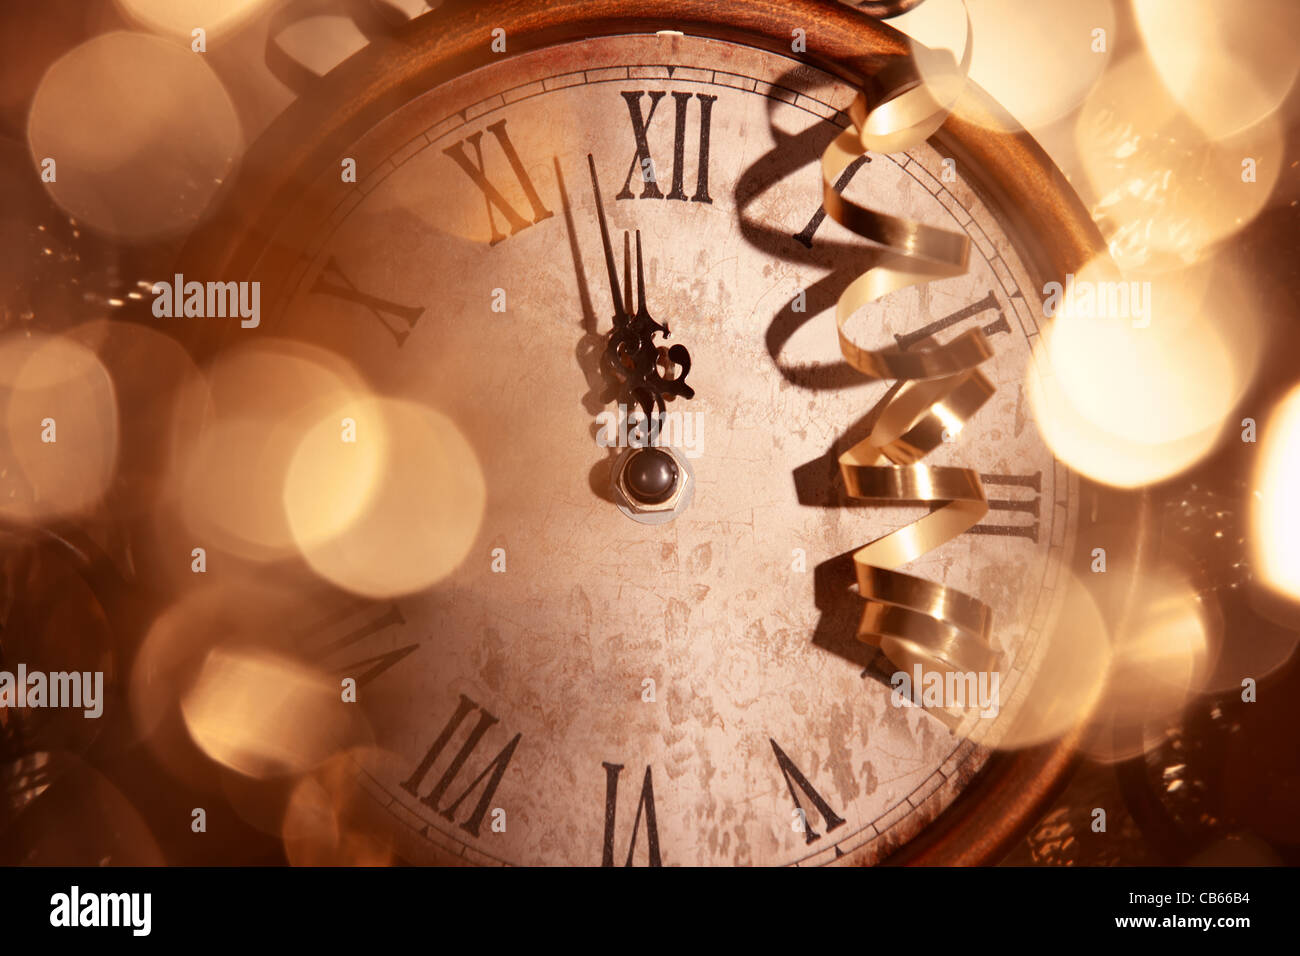 Nearly Twelve O'clock Midnight,New Year Concept. - Stock Image